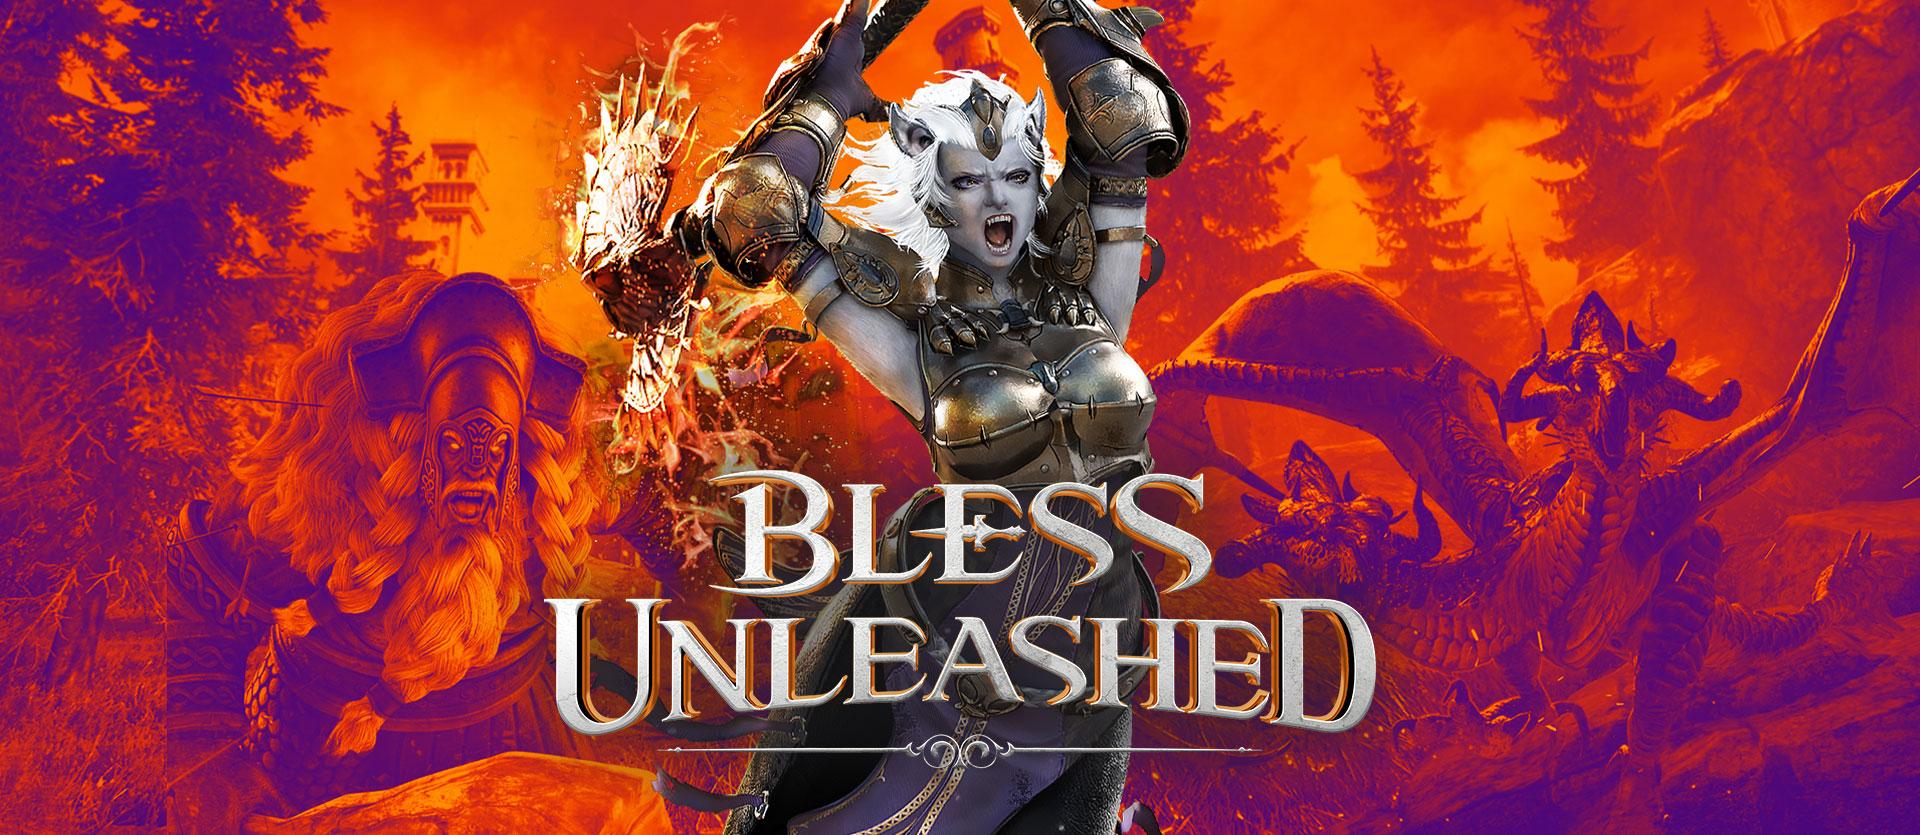 Bless Unleashed, female character in armor with a battle axe in front of a background of another character and a monster in orange and blue hues